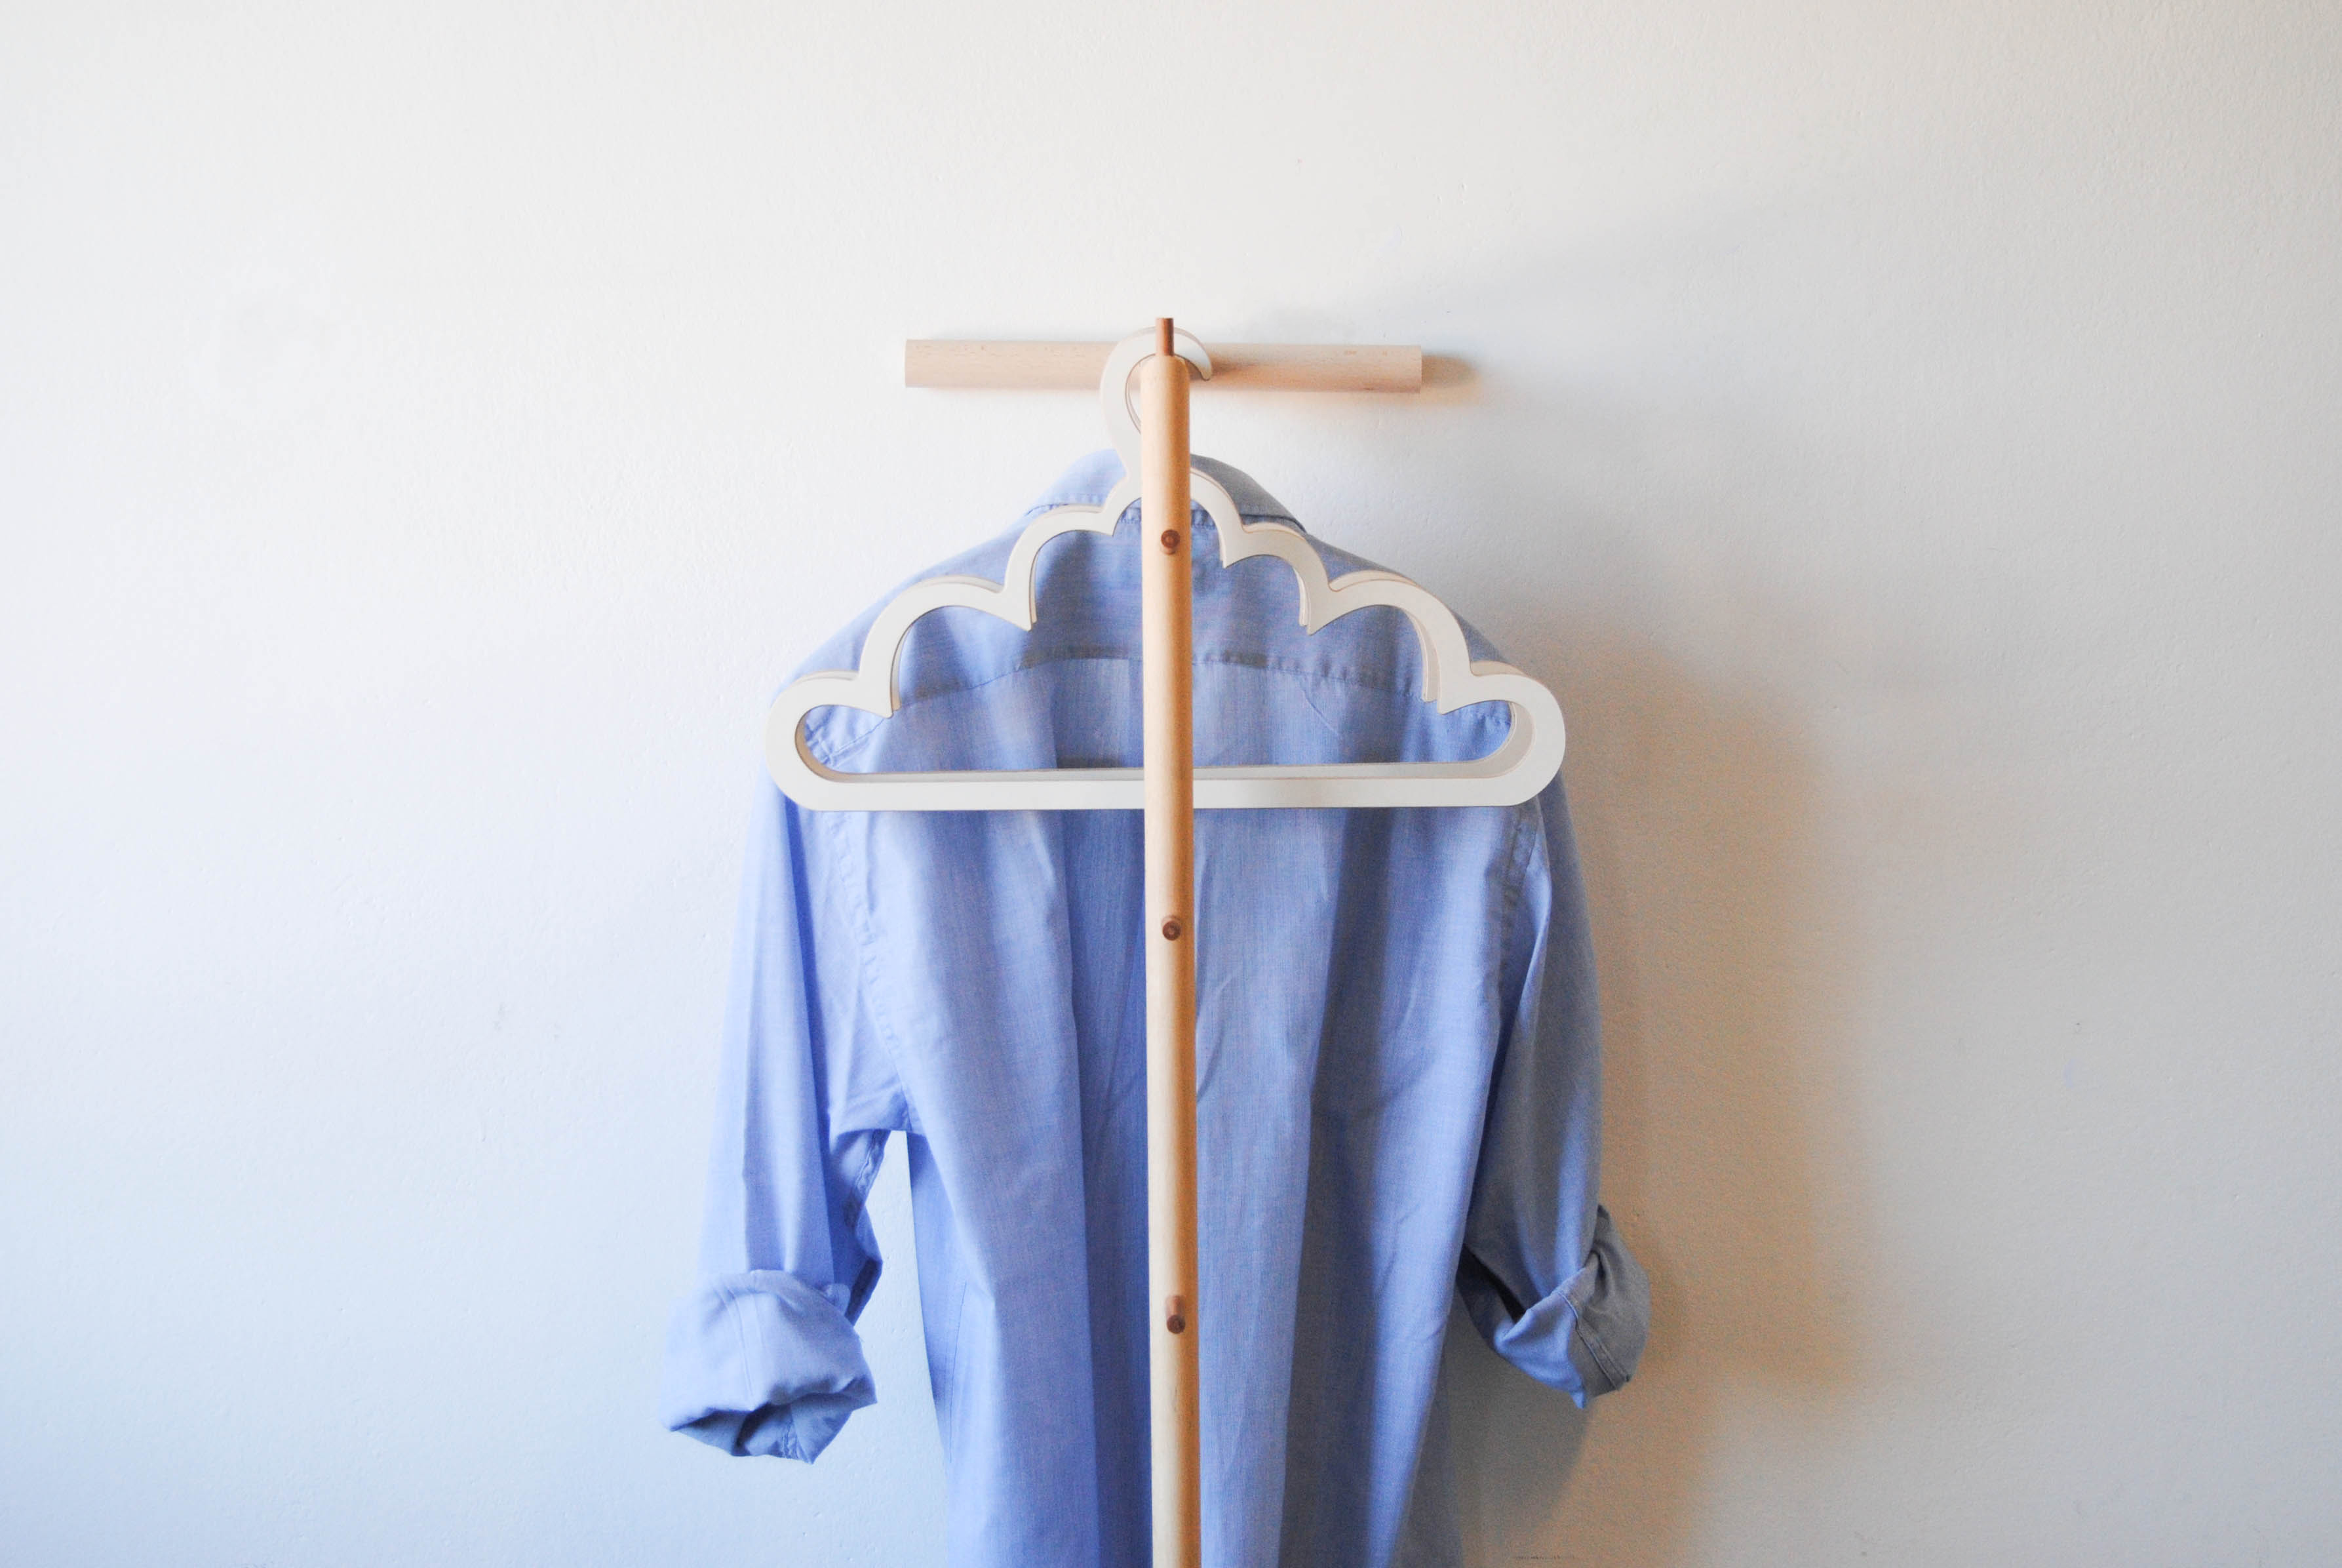 stand james with shirt on the three wooden hangers